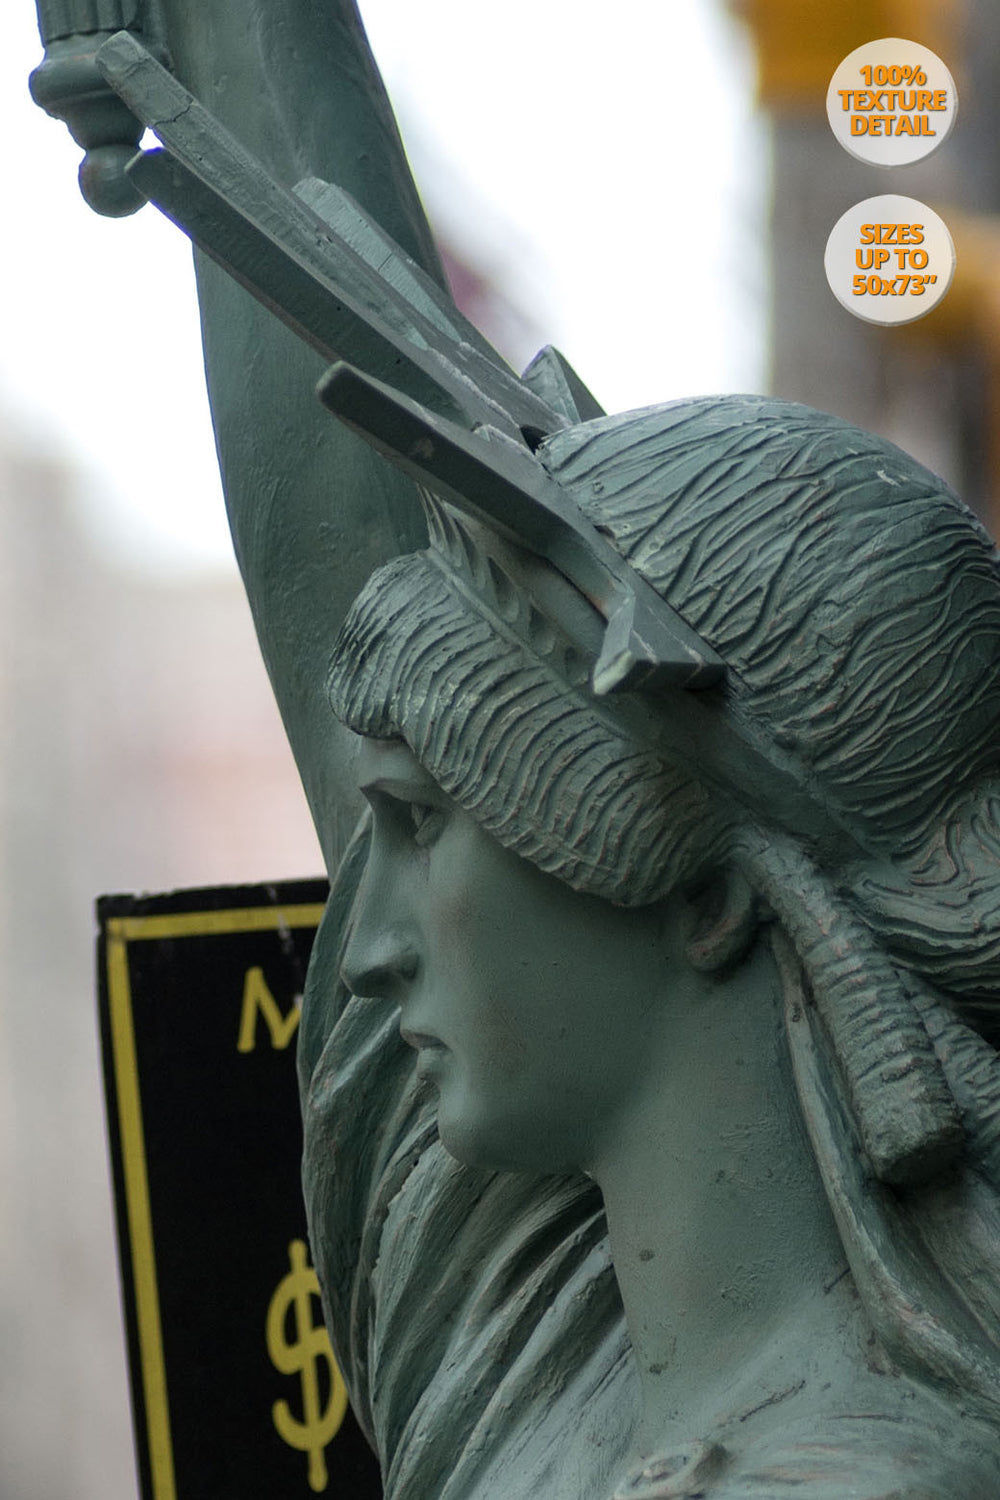 The Statue of Liberty in the Fifth Avenue, New York. | 100% Magnification Detail.